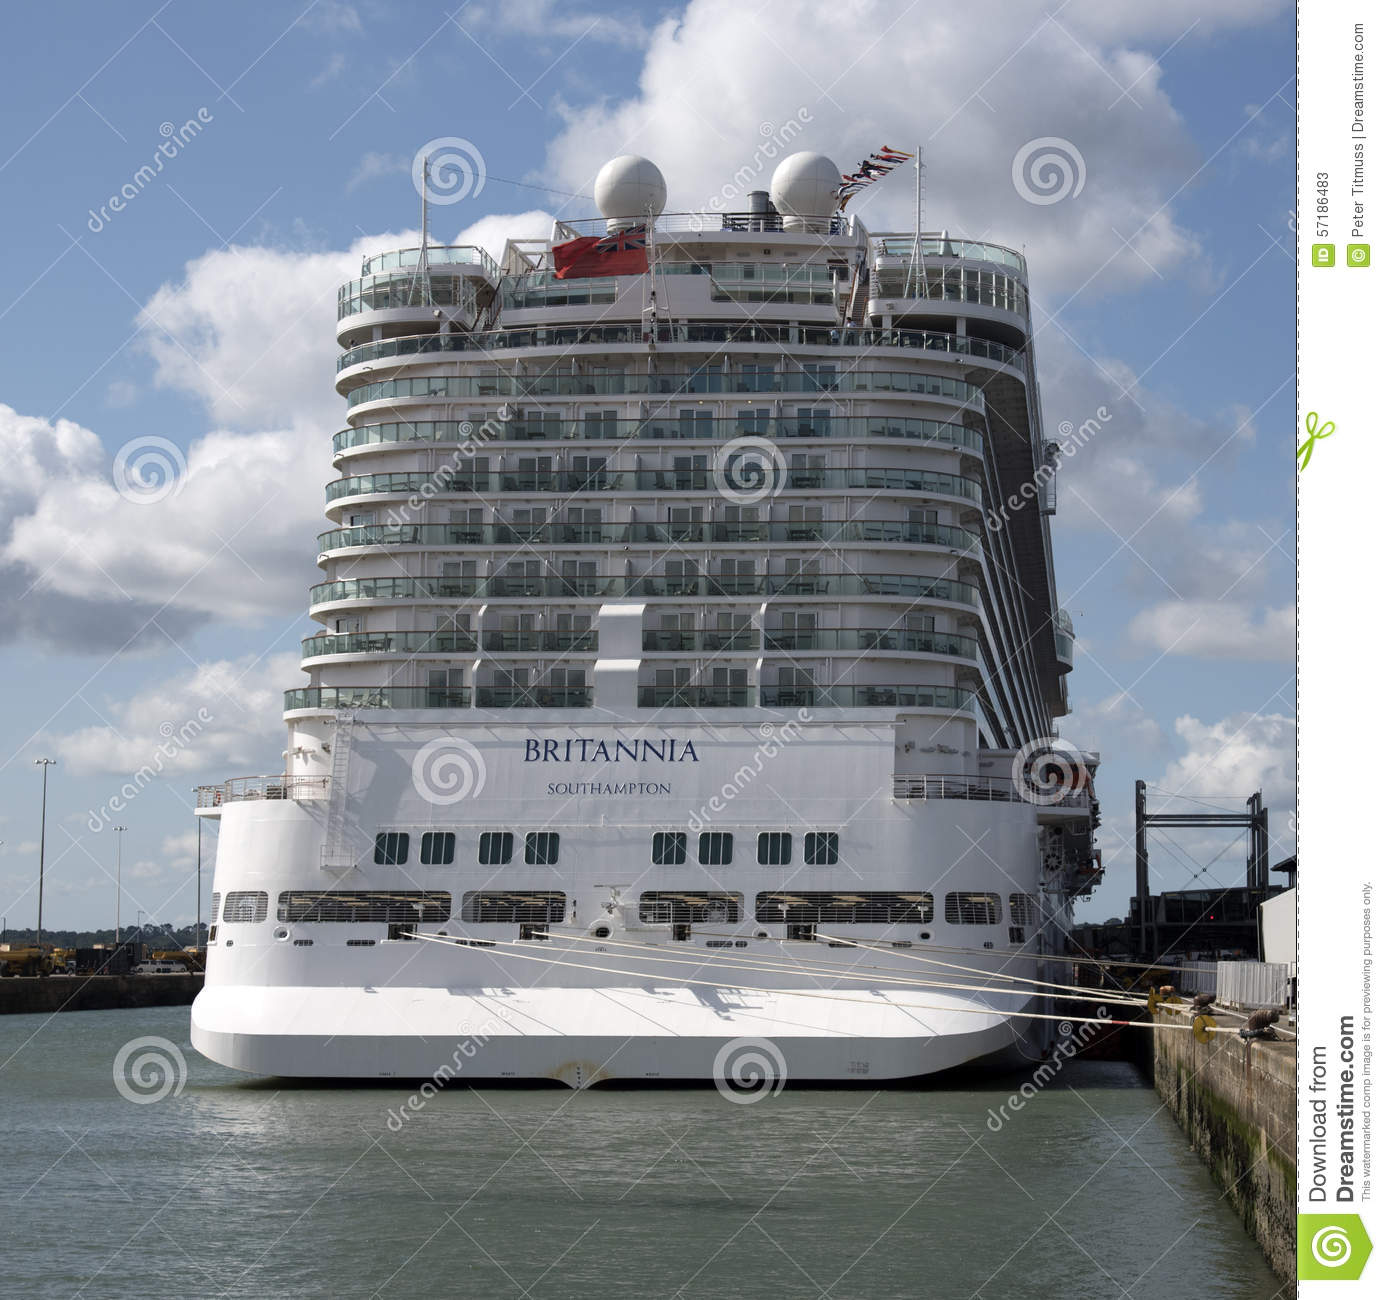 Stern View Of Cabins On A Cruise Ship Editorial Stock